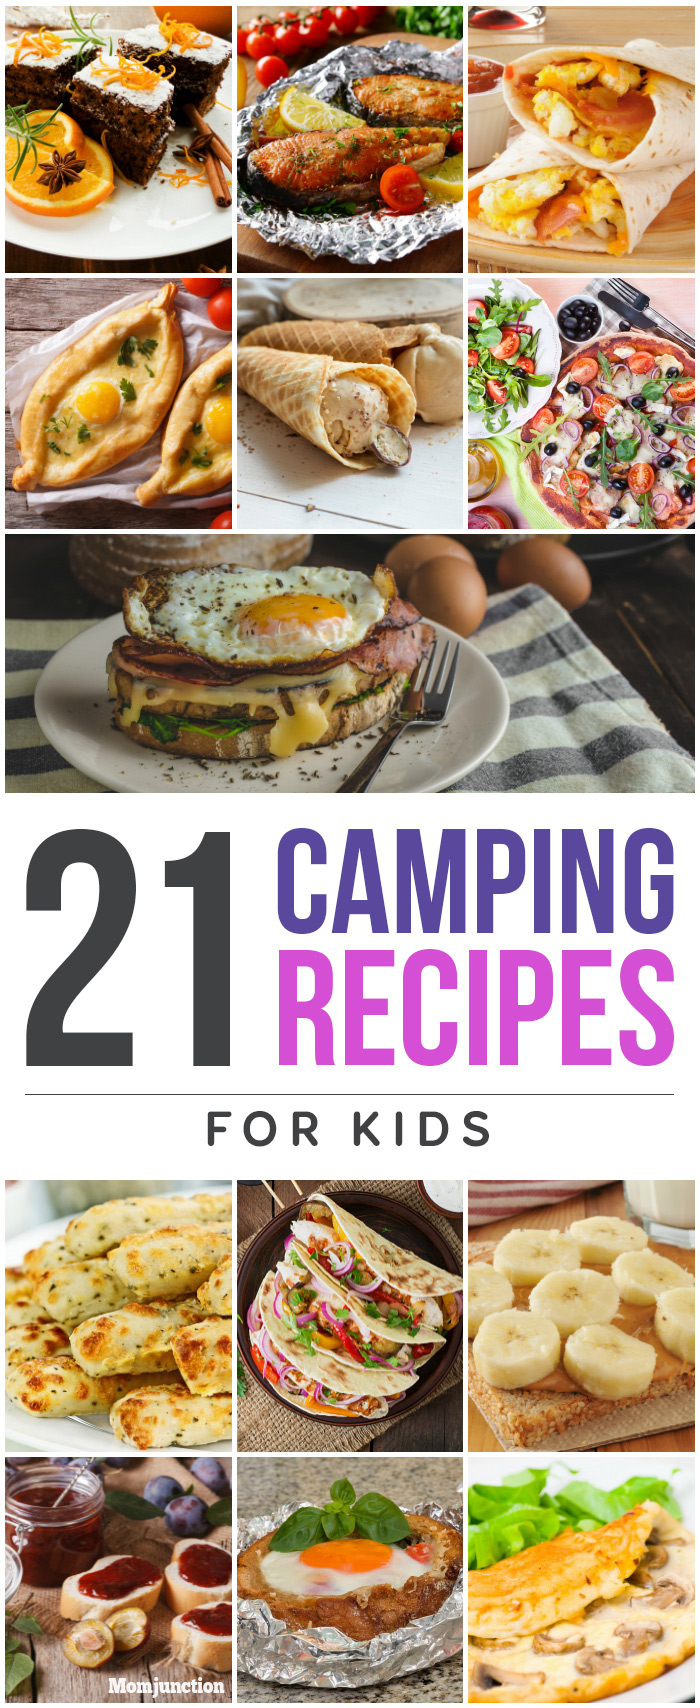 21 quick and easy camping recipes for kids